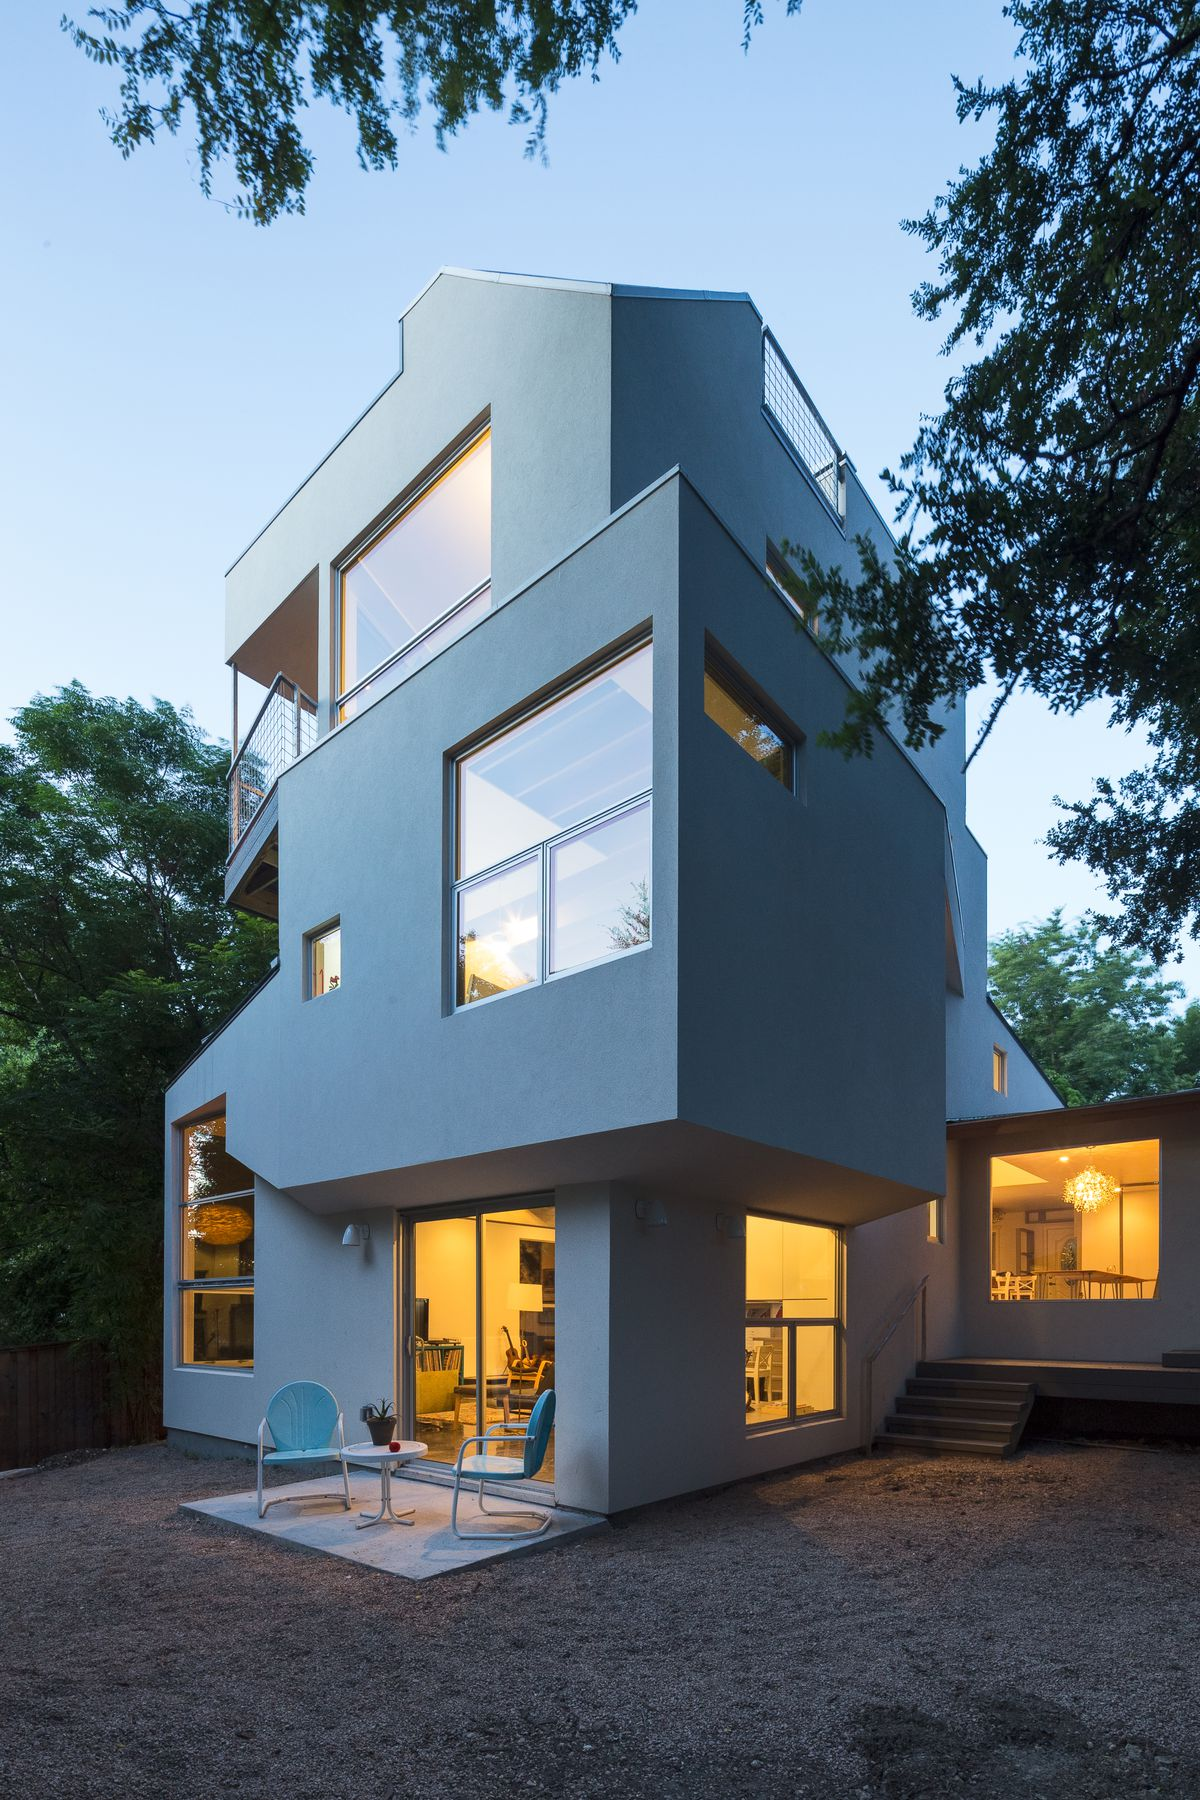 3-story contemporary, white, staggered levels, exterior of house